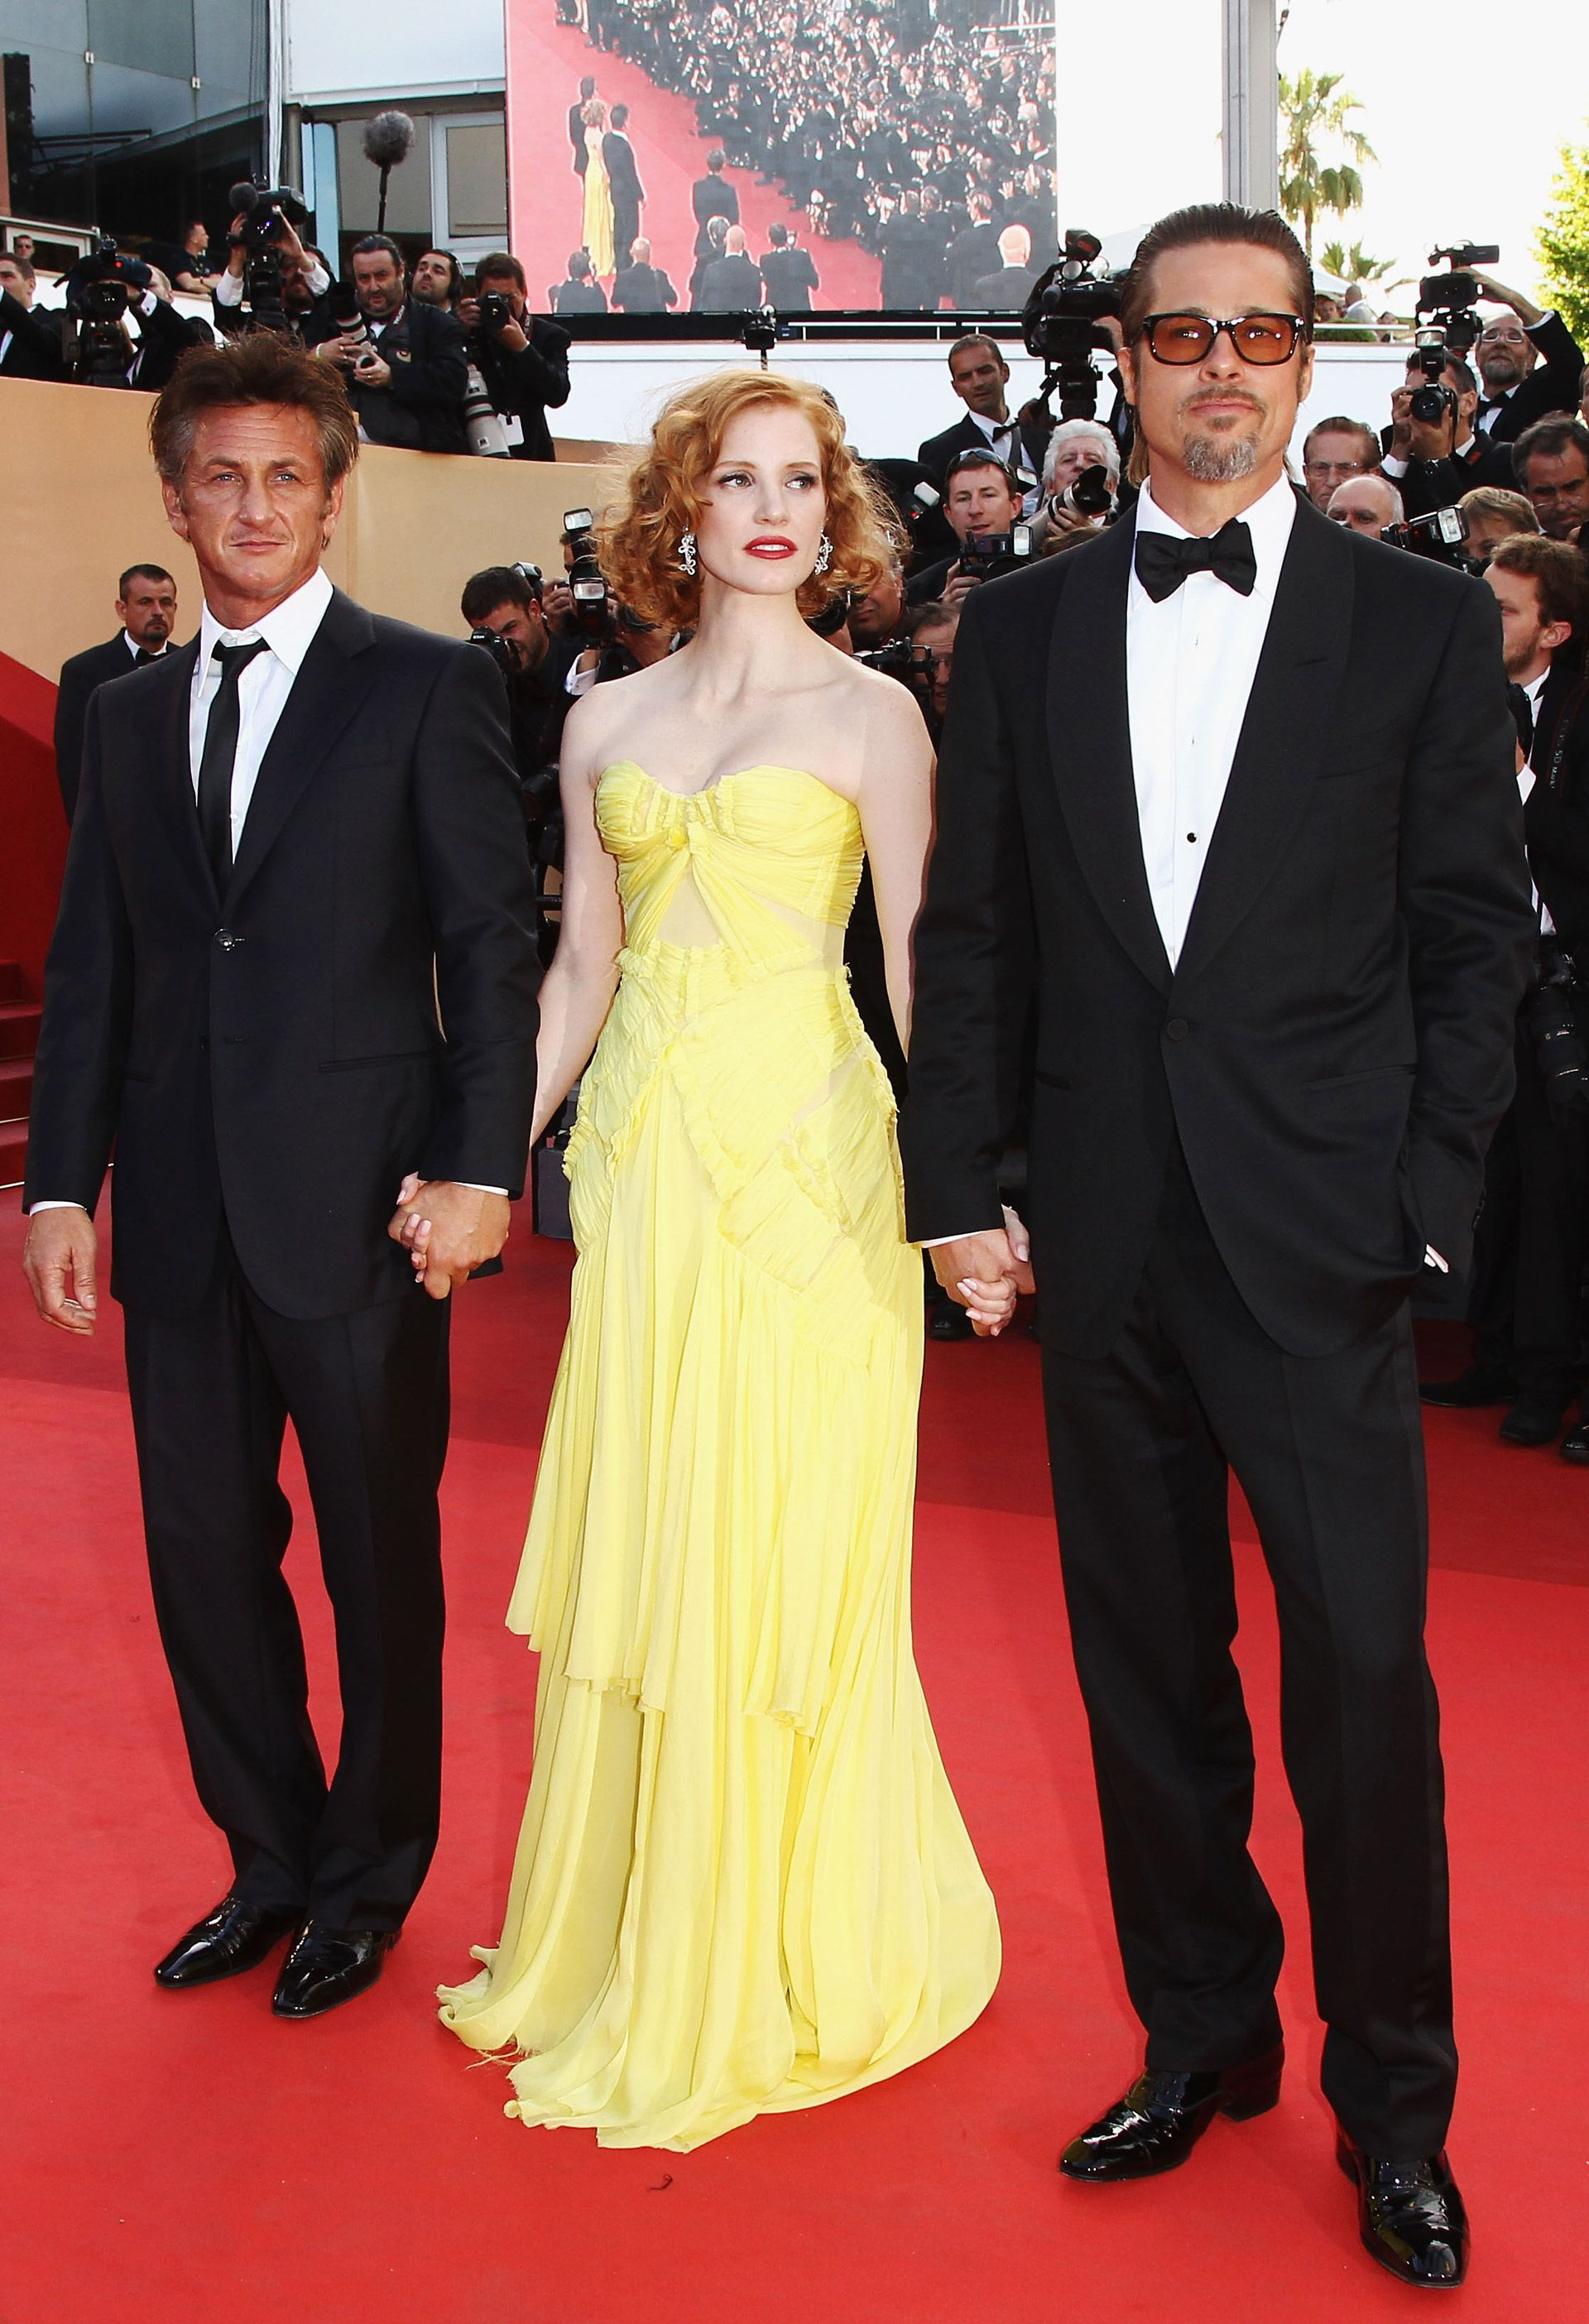 f4ac3627c829 Jessica Chastain Best Red Carpet Moments - Jessica Chastain Red ...